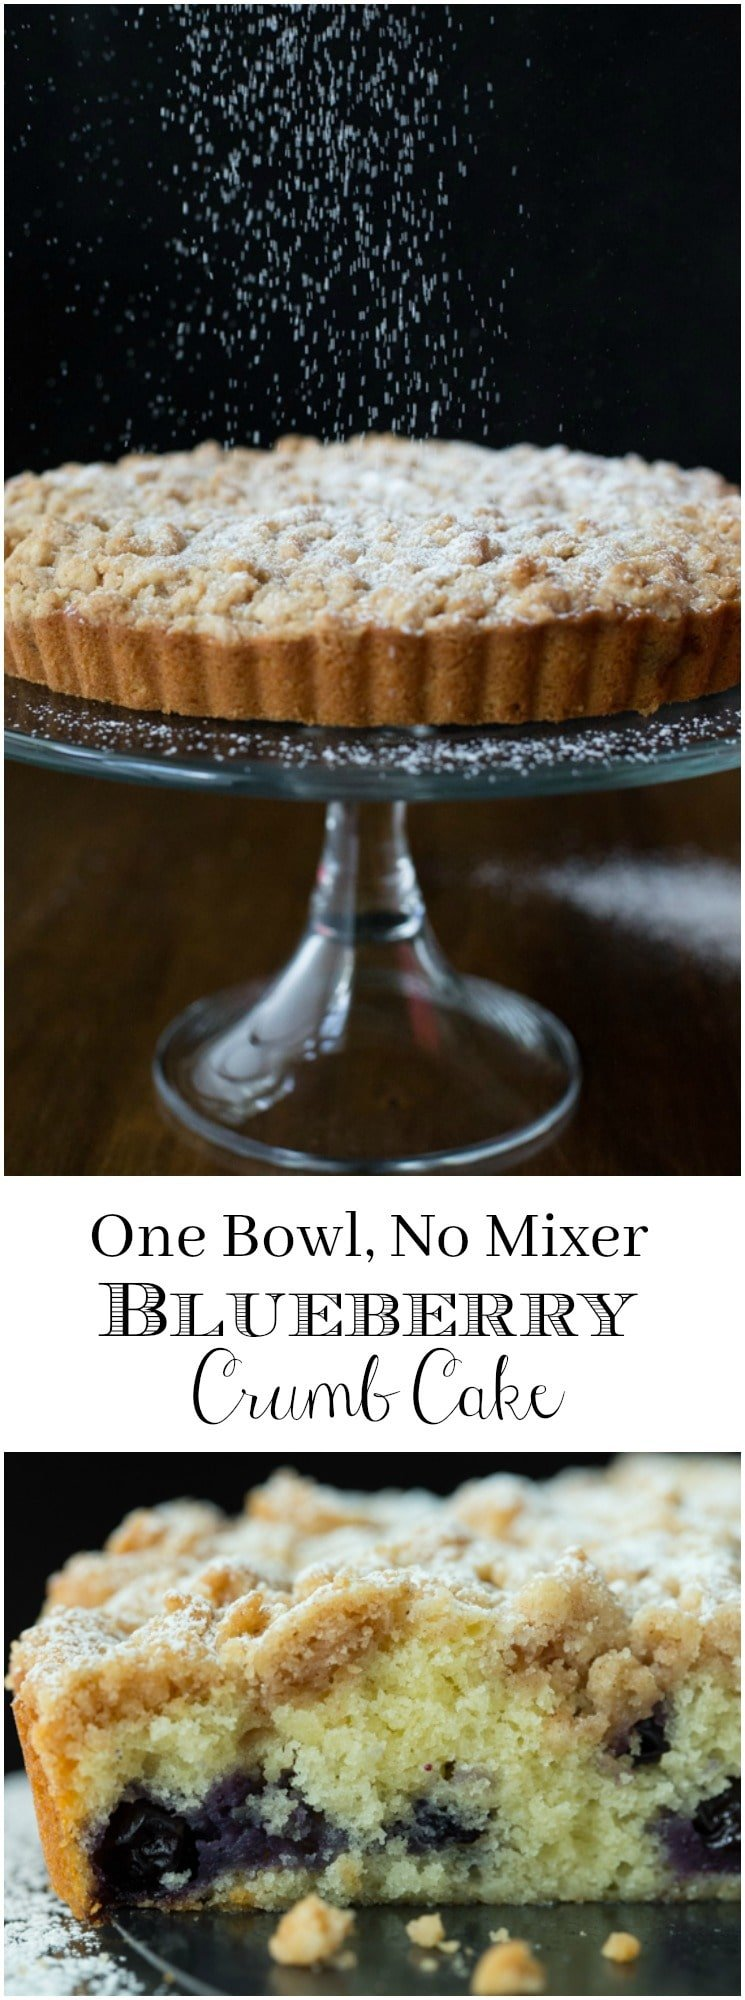 This moist, tender Blueberry Crumb Cake is easy to make (no mixer required) and it's so delicious. Everyone who tries it goes crazy!